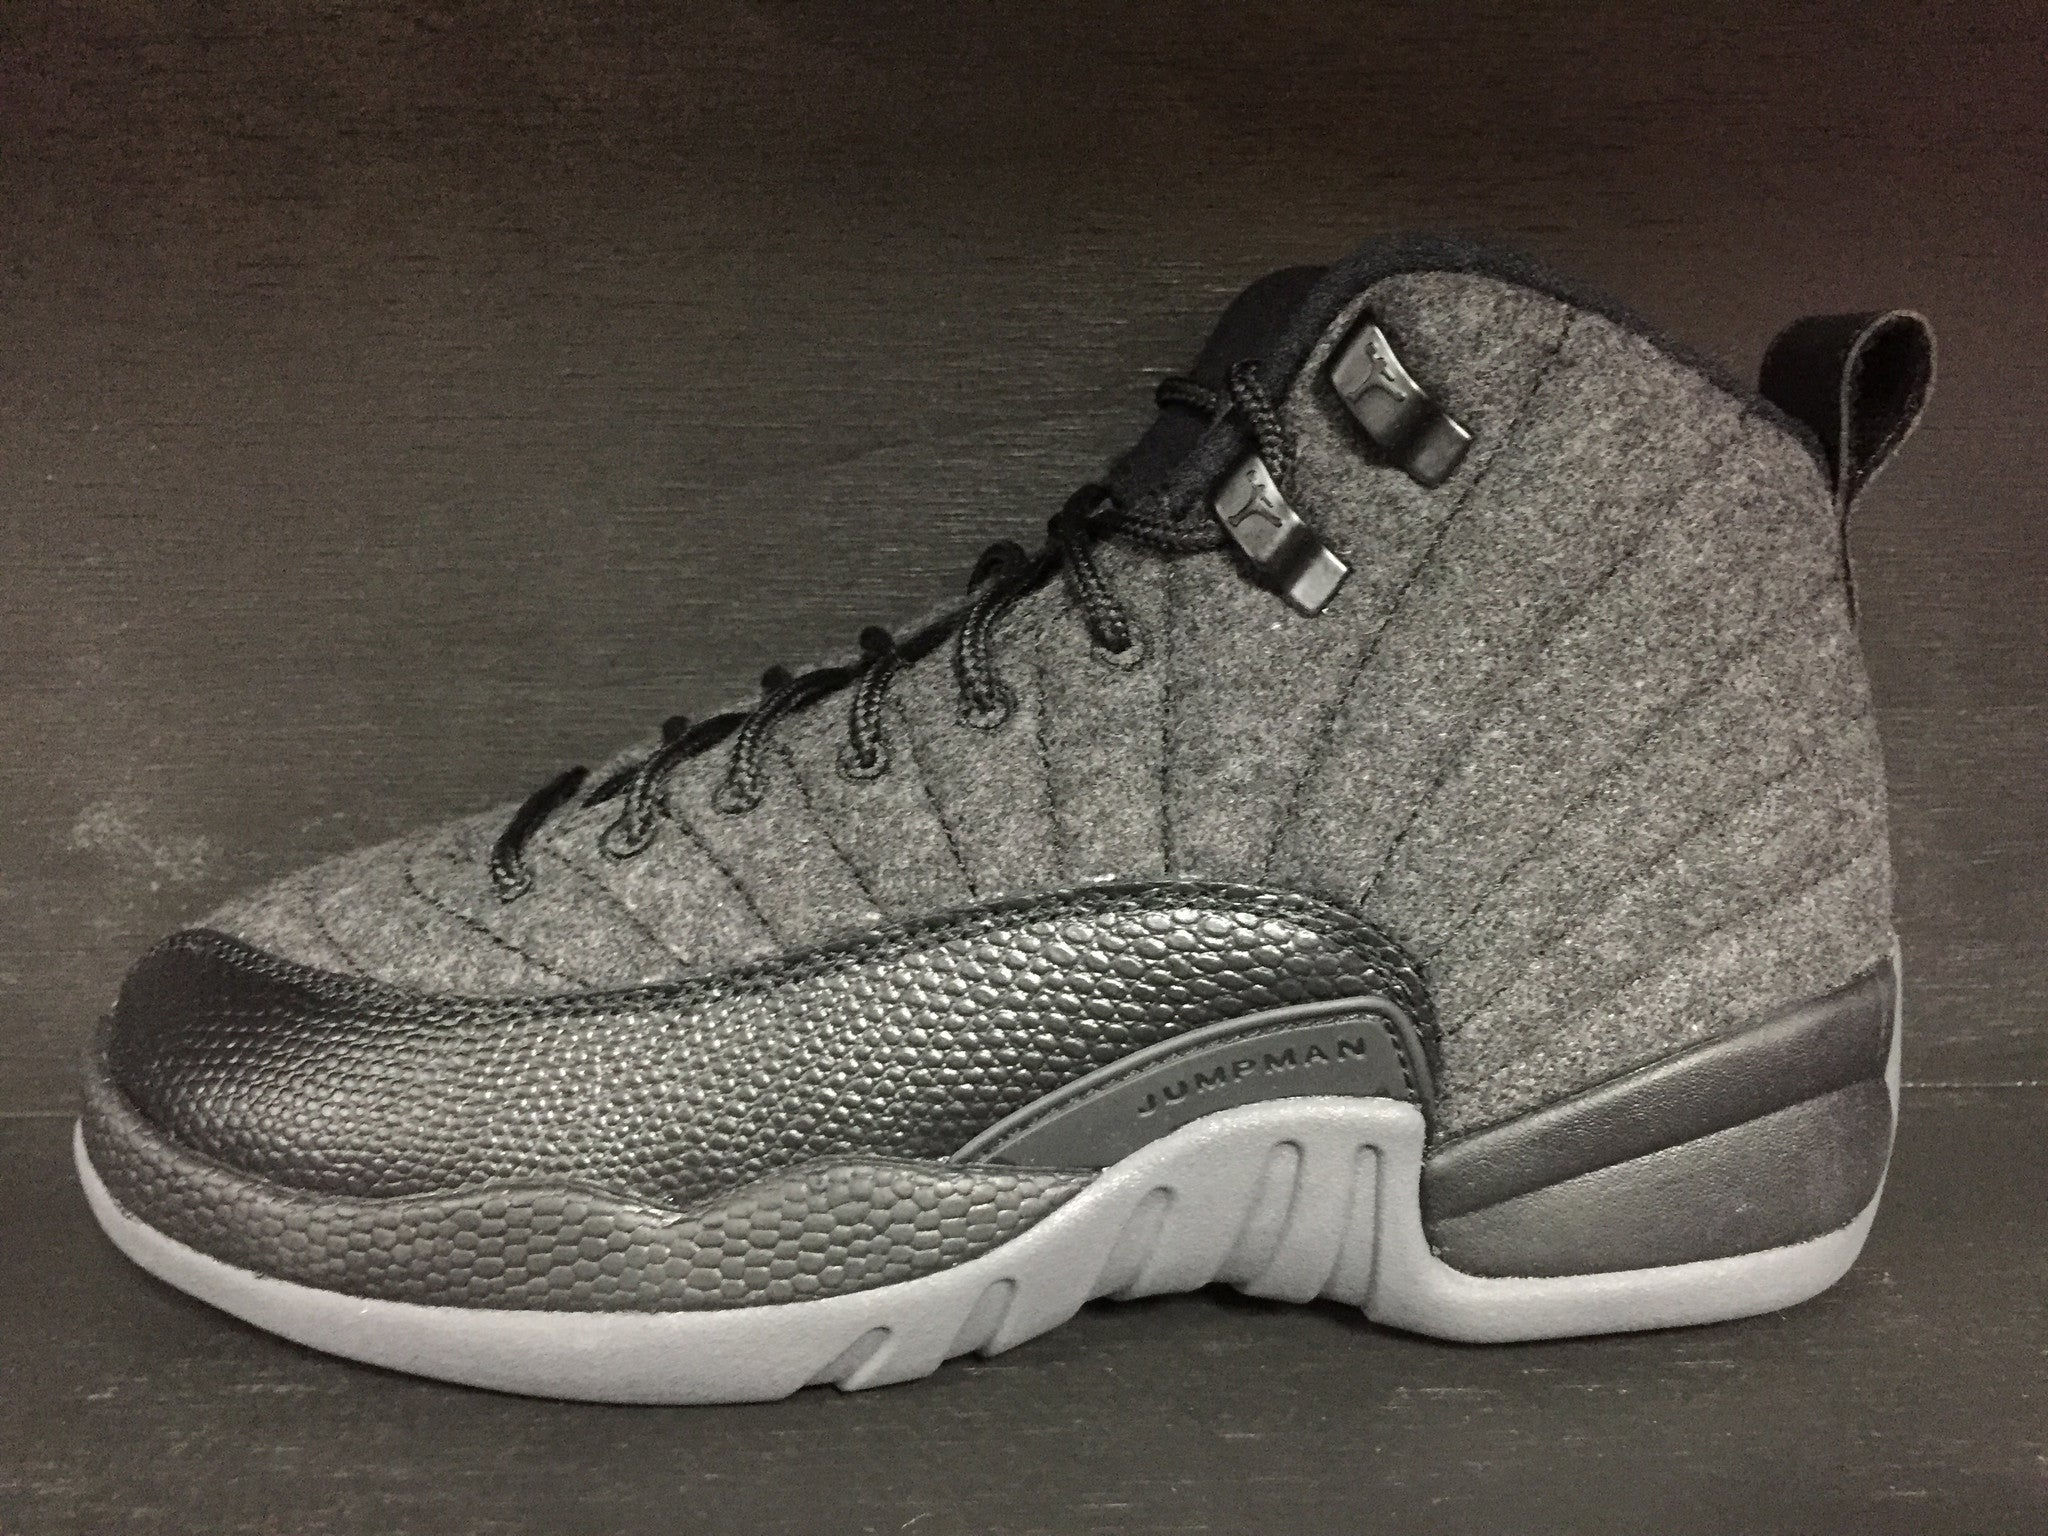 Air Jordan 12 Retro 'Wool' GS